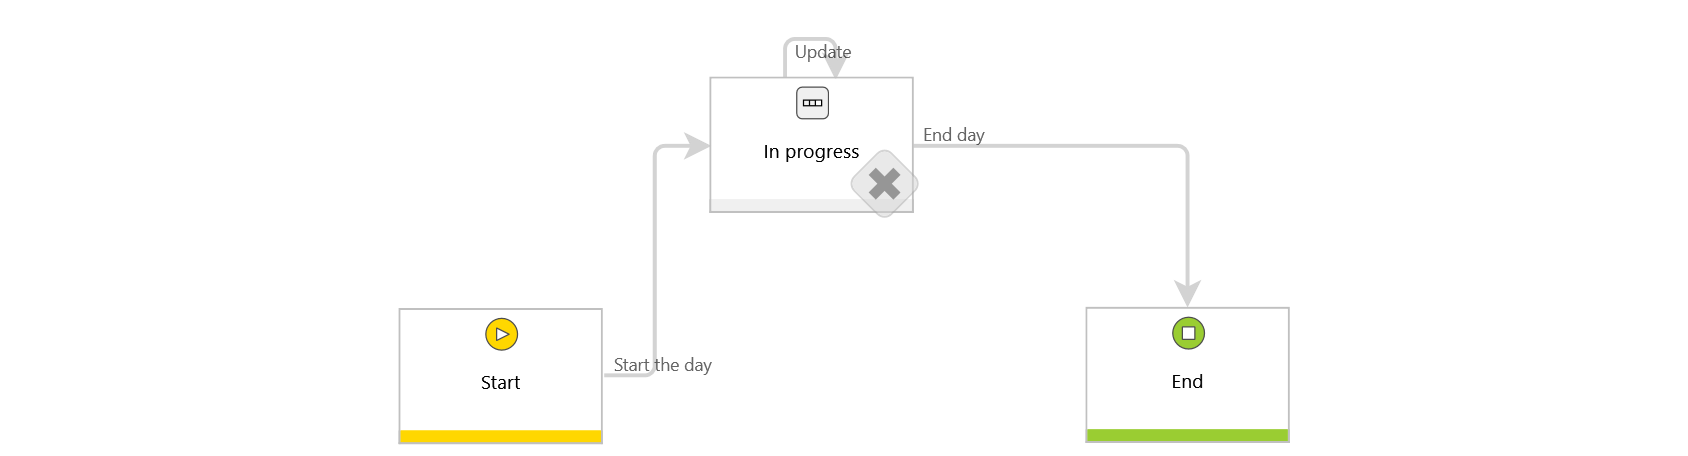 The image shows the workflow diagram